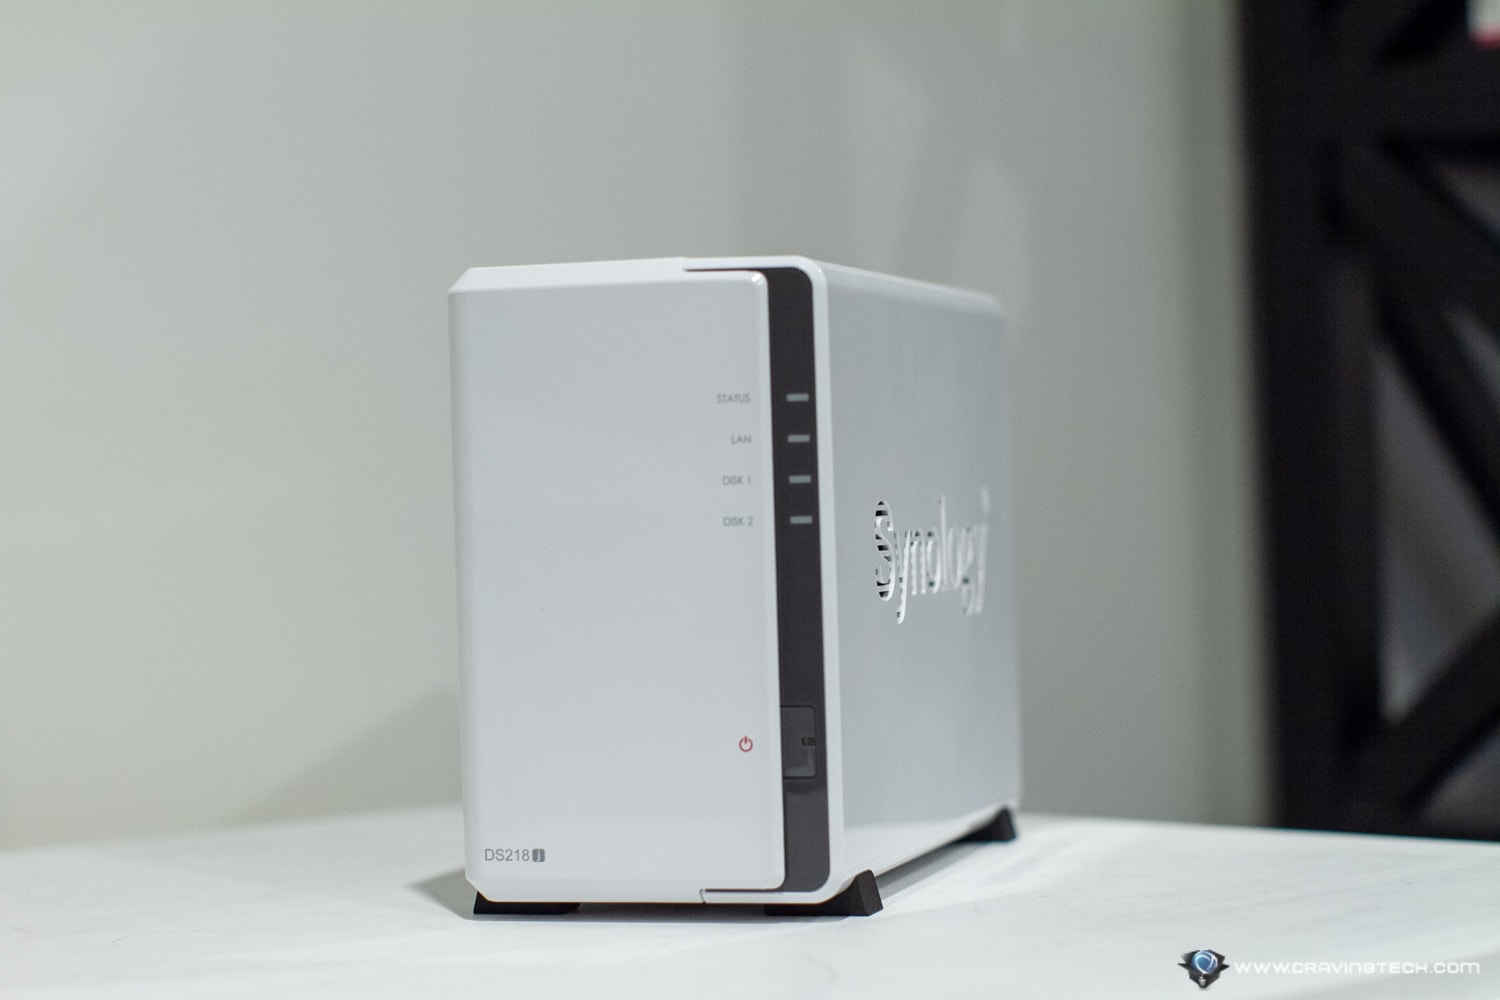 Synology-DS218j NAS for Home